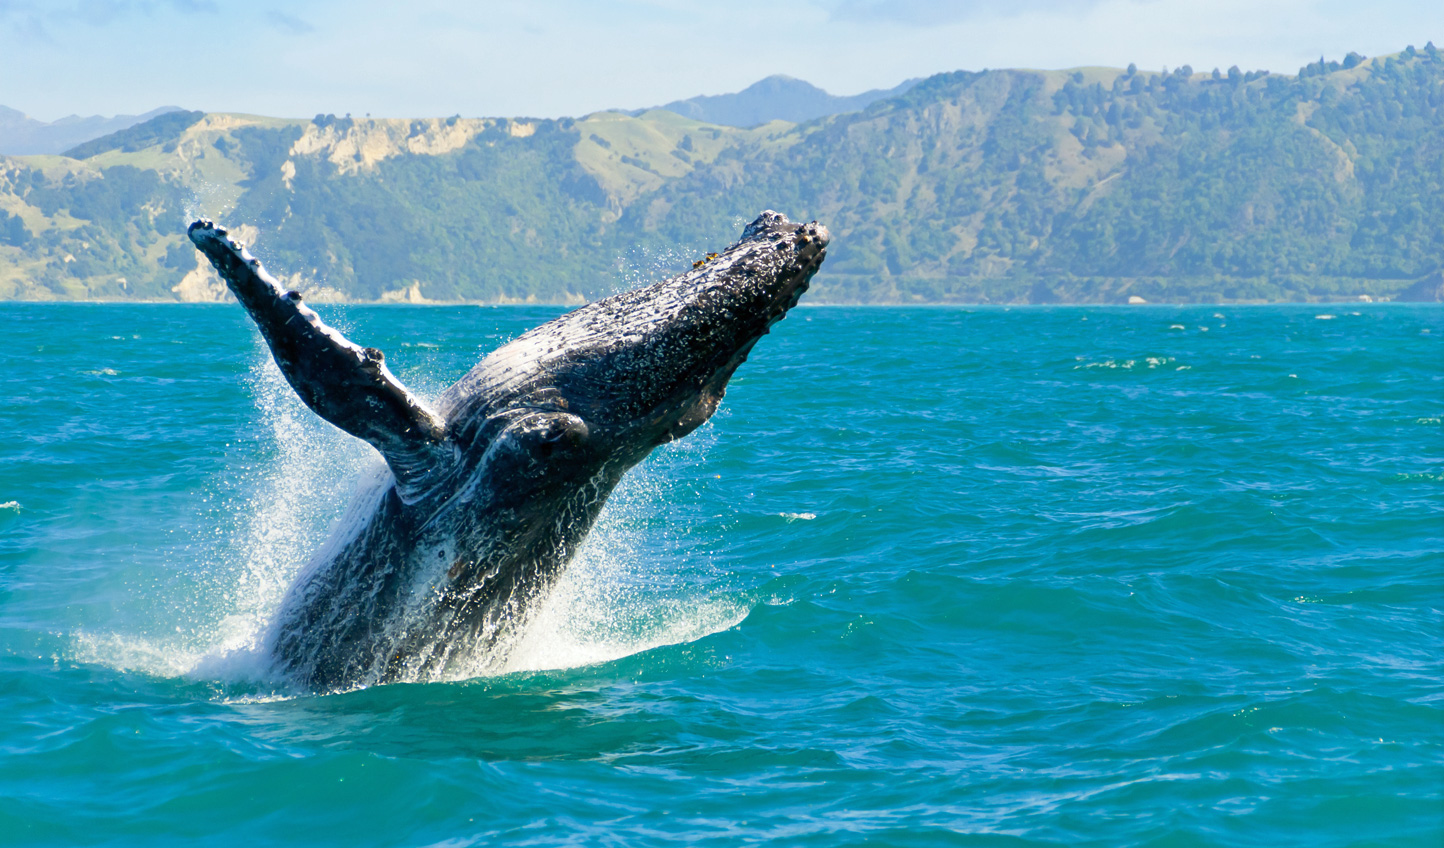 Head out on a whale watching adventure and watch as they put on a show